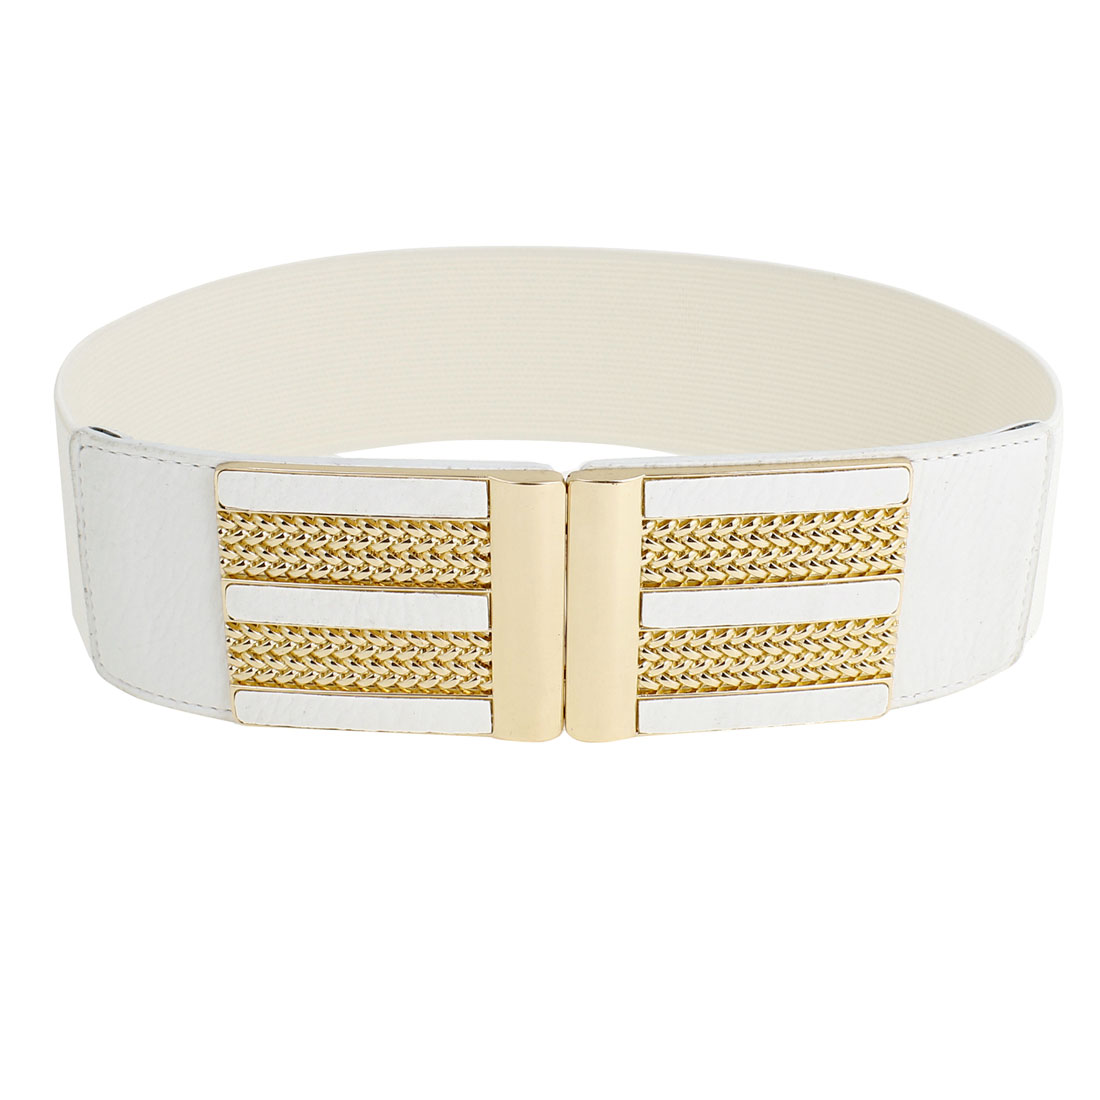 Gold Tone Metal Interlocking Buckle White Stretch Cinch Waist Belt for Women